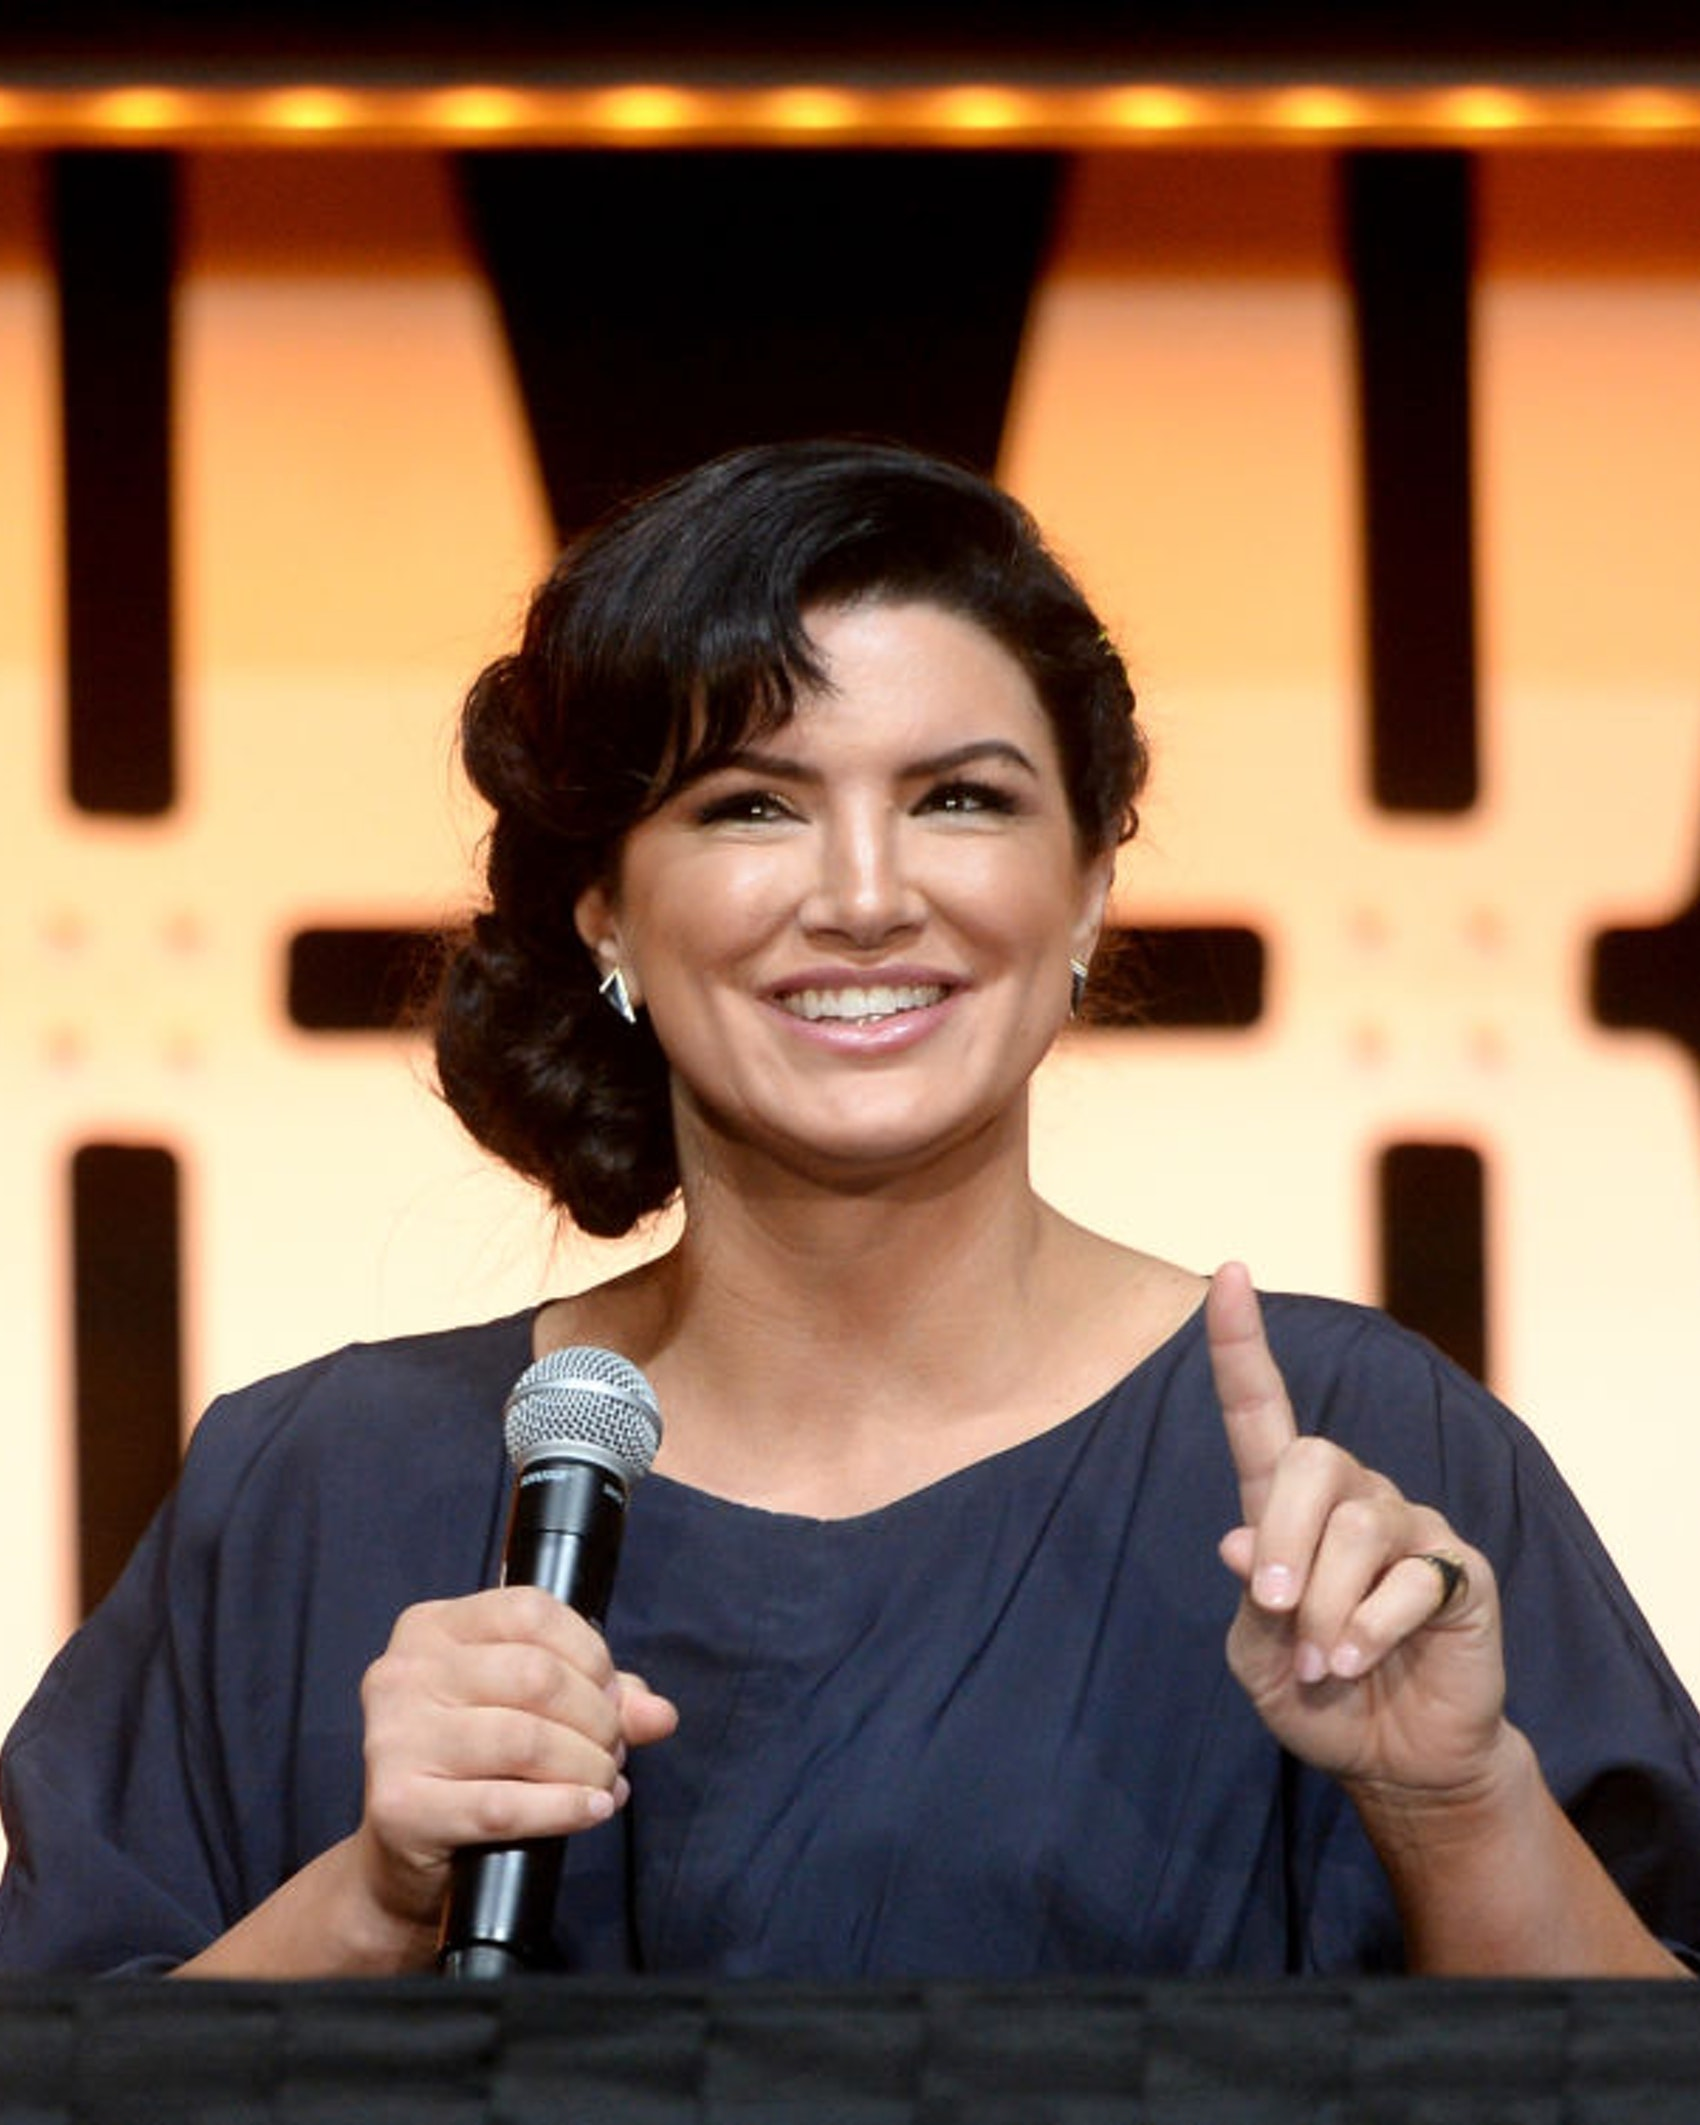 "CHICAGO, IL - APRIL 14: Gina Carano (Cara Dune) onstage during ""The Mandalorian"" panel at the Star Wars Celebration at McCormick Place Convention Center on April 14, 2019 in Chicago, Illinois. (Photo by Daniel Boczarski/WireImage for Disney)"